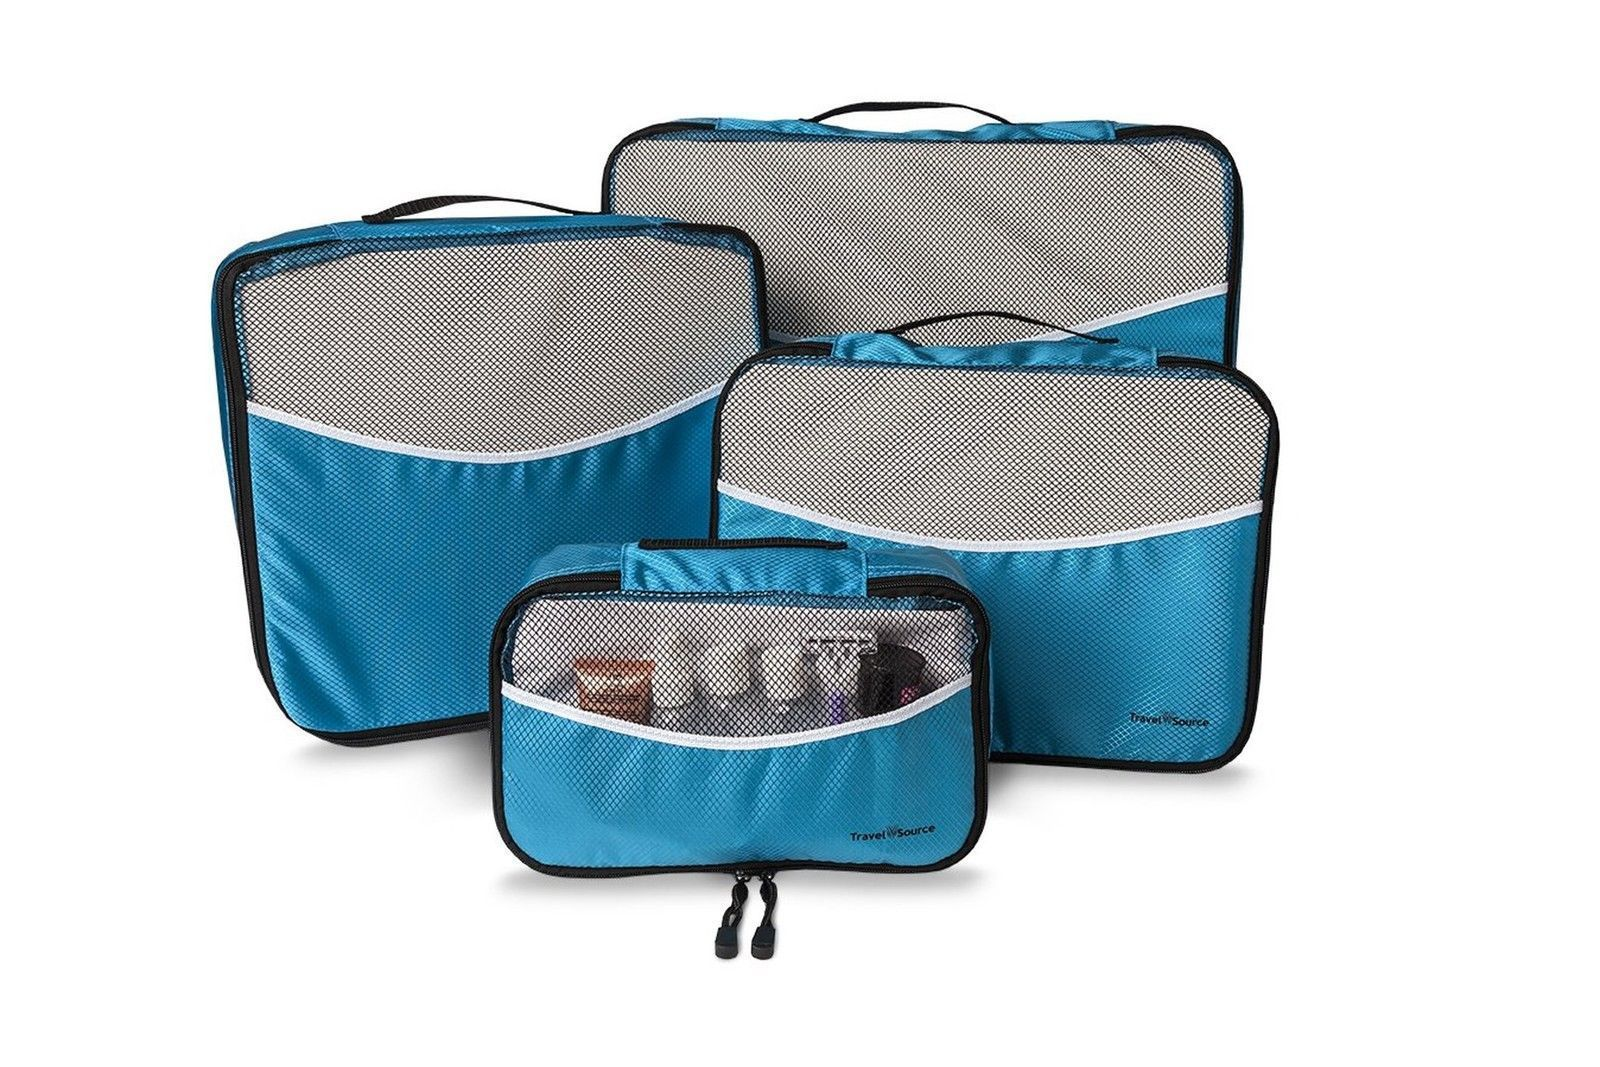 Travel Source Luggage Packing Cubes with Drawstring Laundry Bag (5 Piece Set).